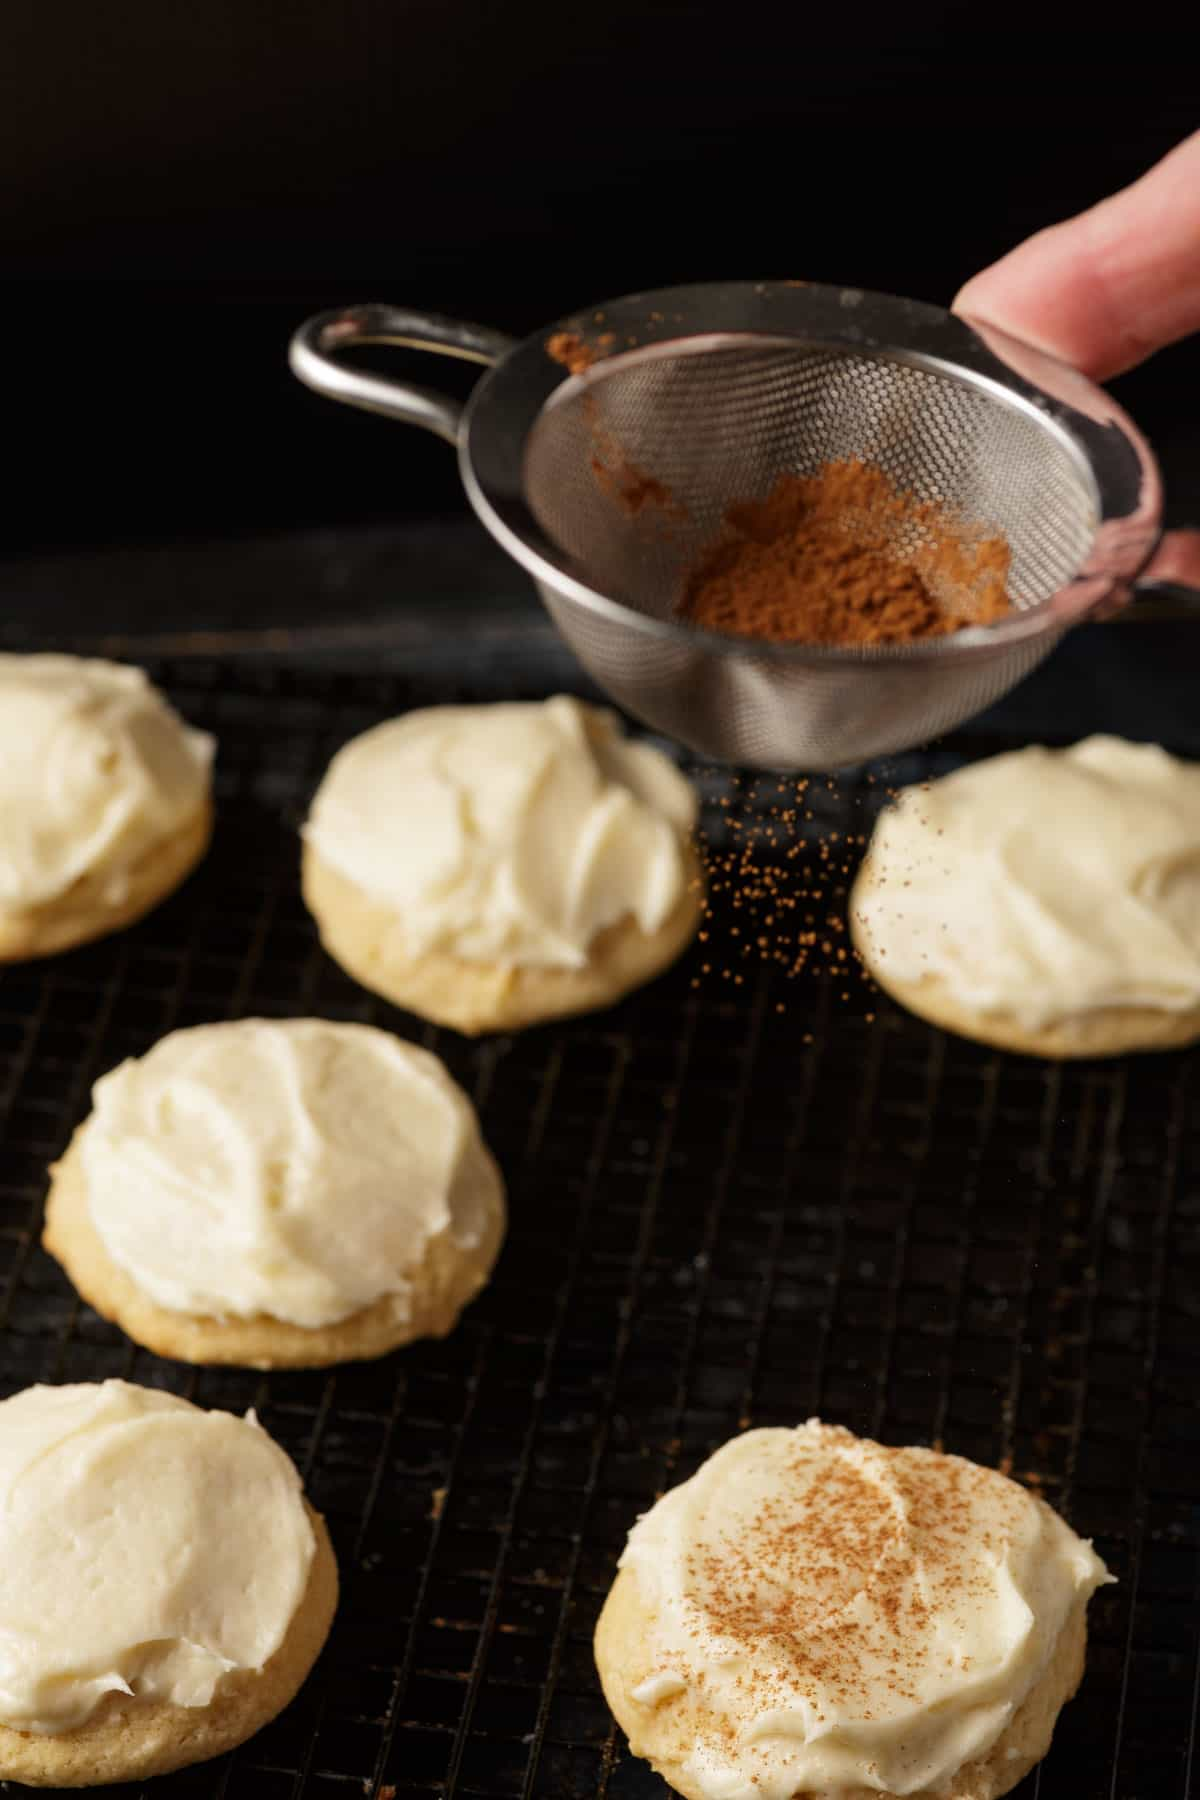 Cinnamon being sprinkled on frosted cookies